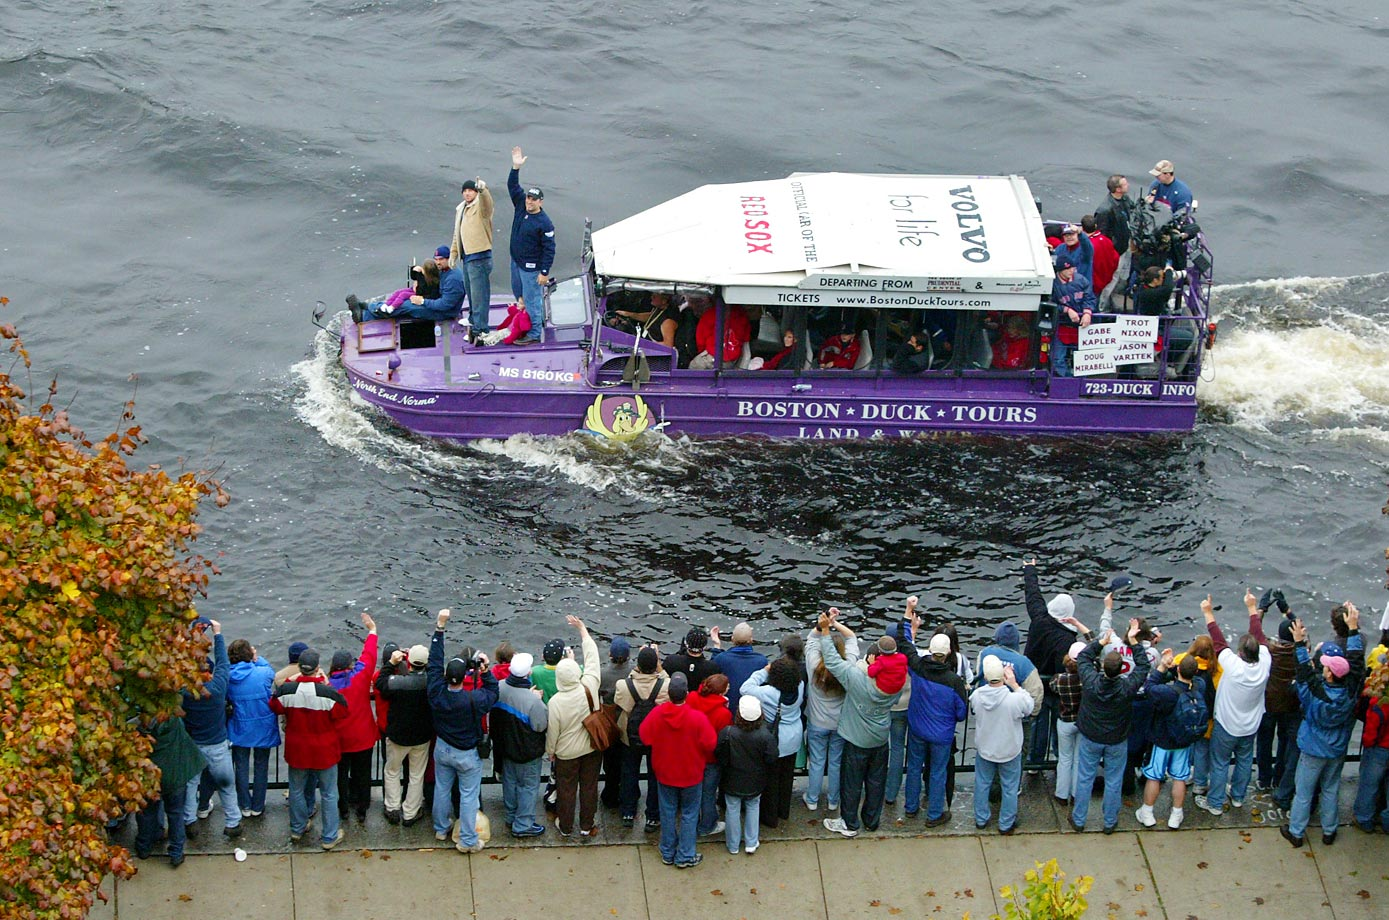 A duck boat in the rolling rally parade celebrating the Boston Red Sox's World Series victory in 2004.